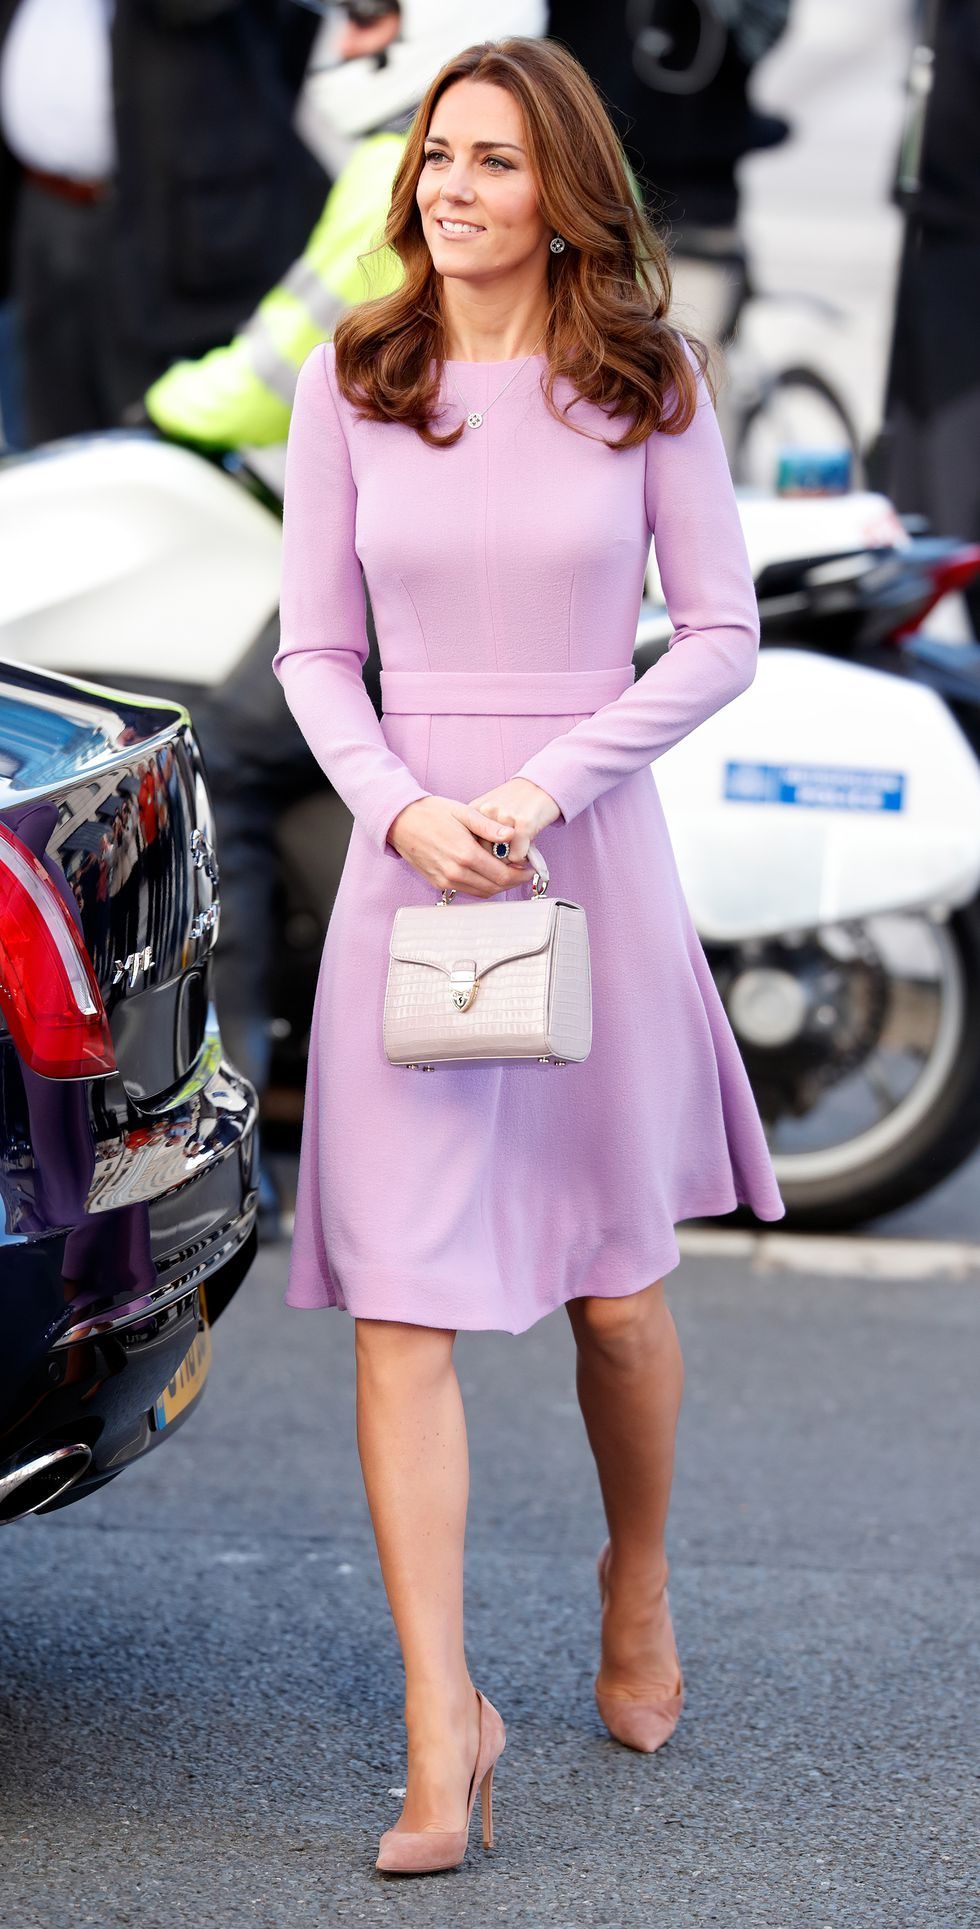 56bb91a1fd3839 Kate Middleton s Best Style Moments - The Duchess of Cambridge s Most  Fashionable Outfits